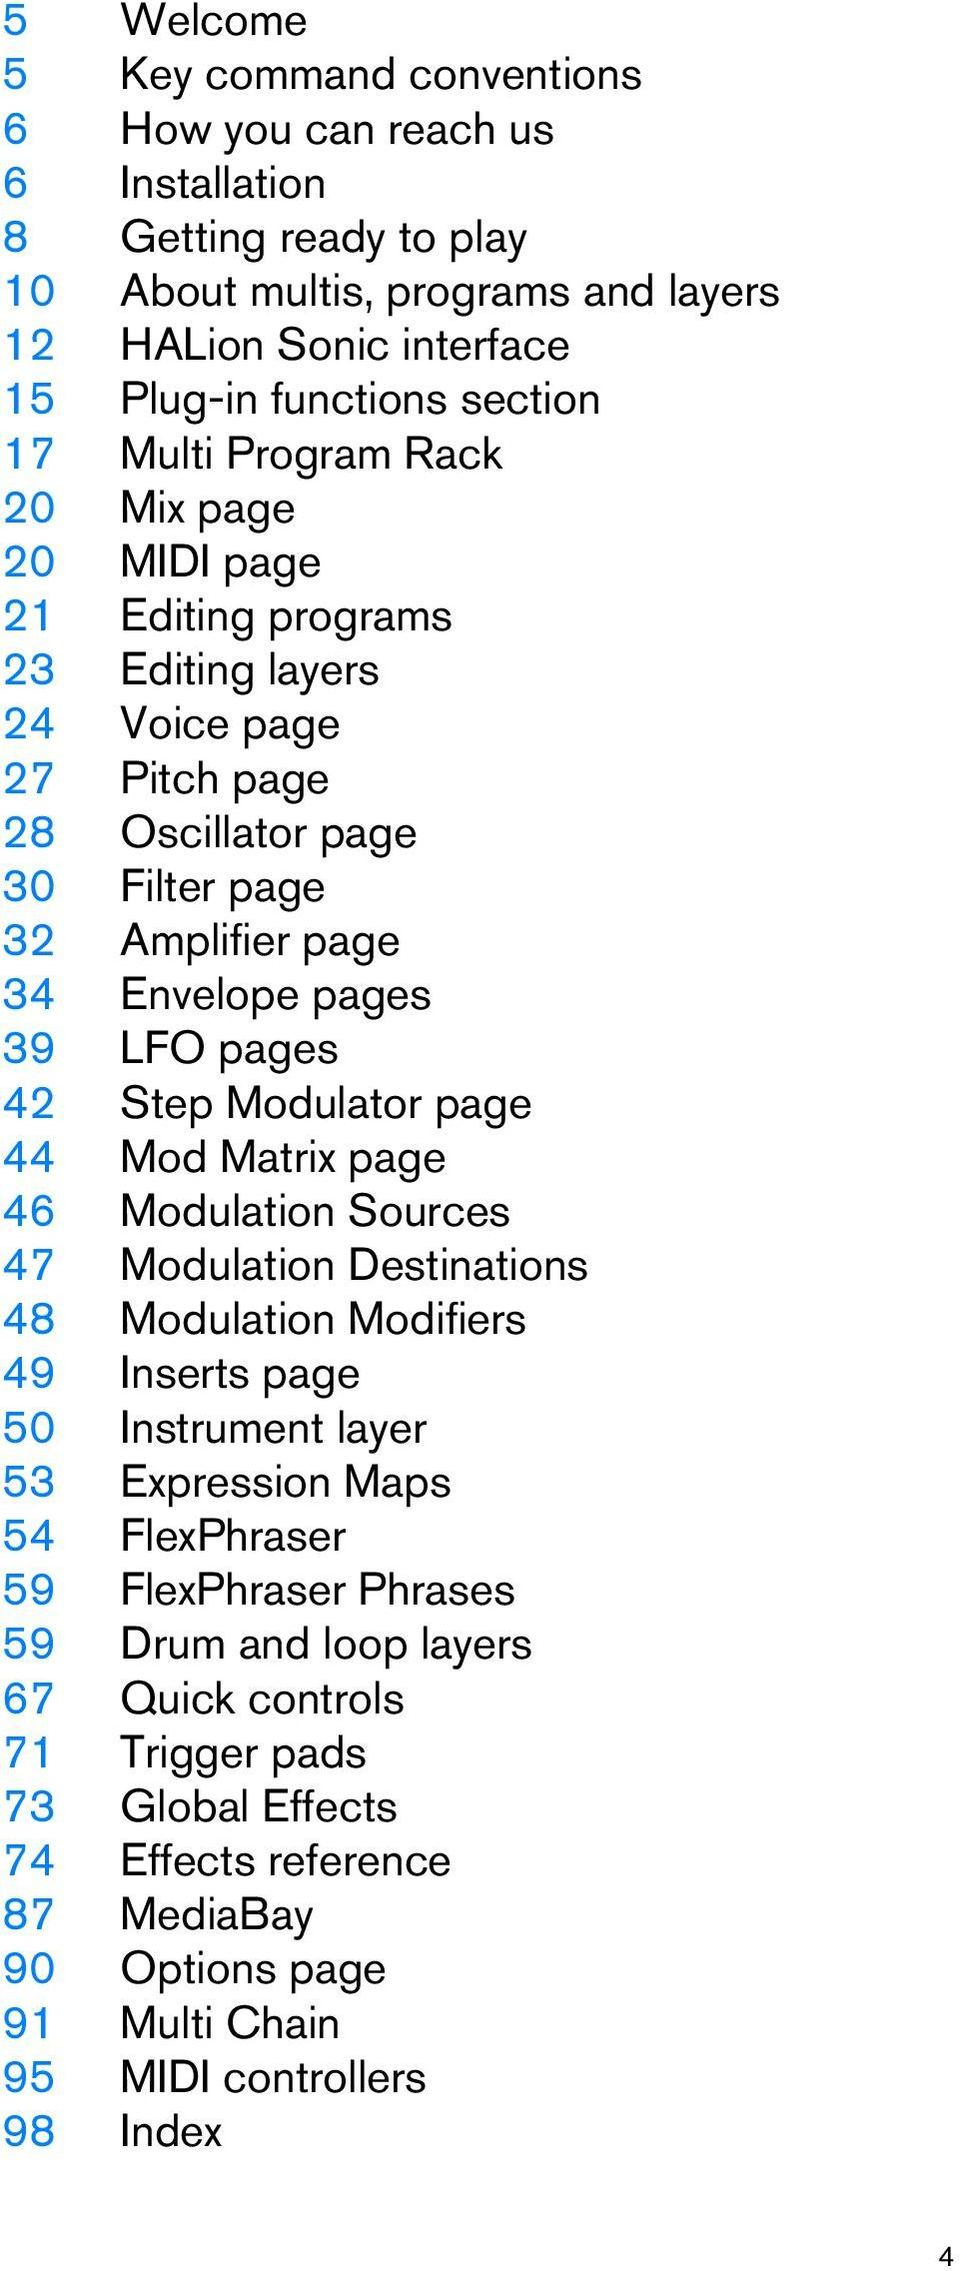 42 Step Modulator page 44 Mod Matrix page 46 Modulation Sources 47 Modulation Destinations 48 Modulation Modifiers 49 Inserts page 50 Instrument layer 53 Expression Maps 54 FlexPhraser 59